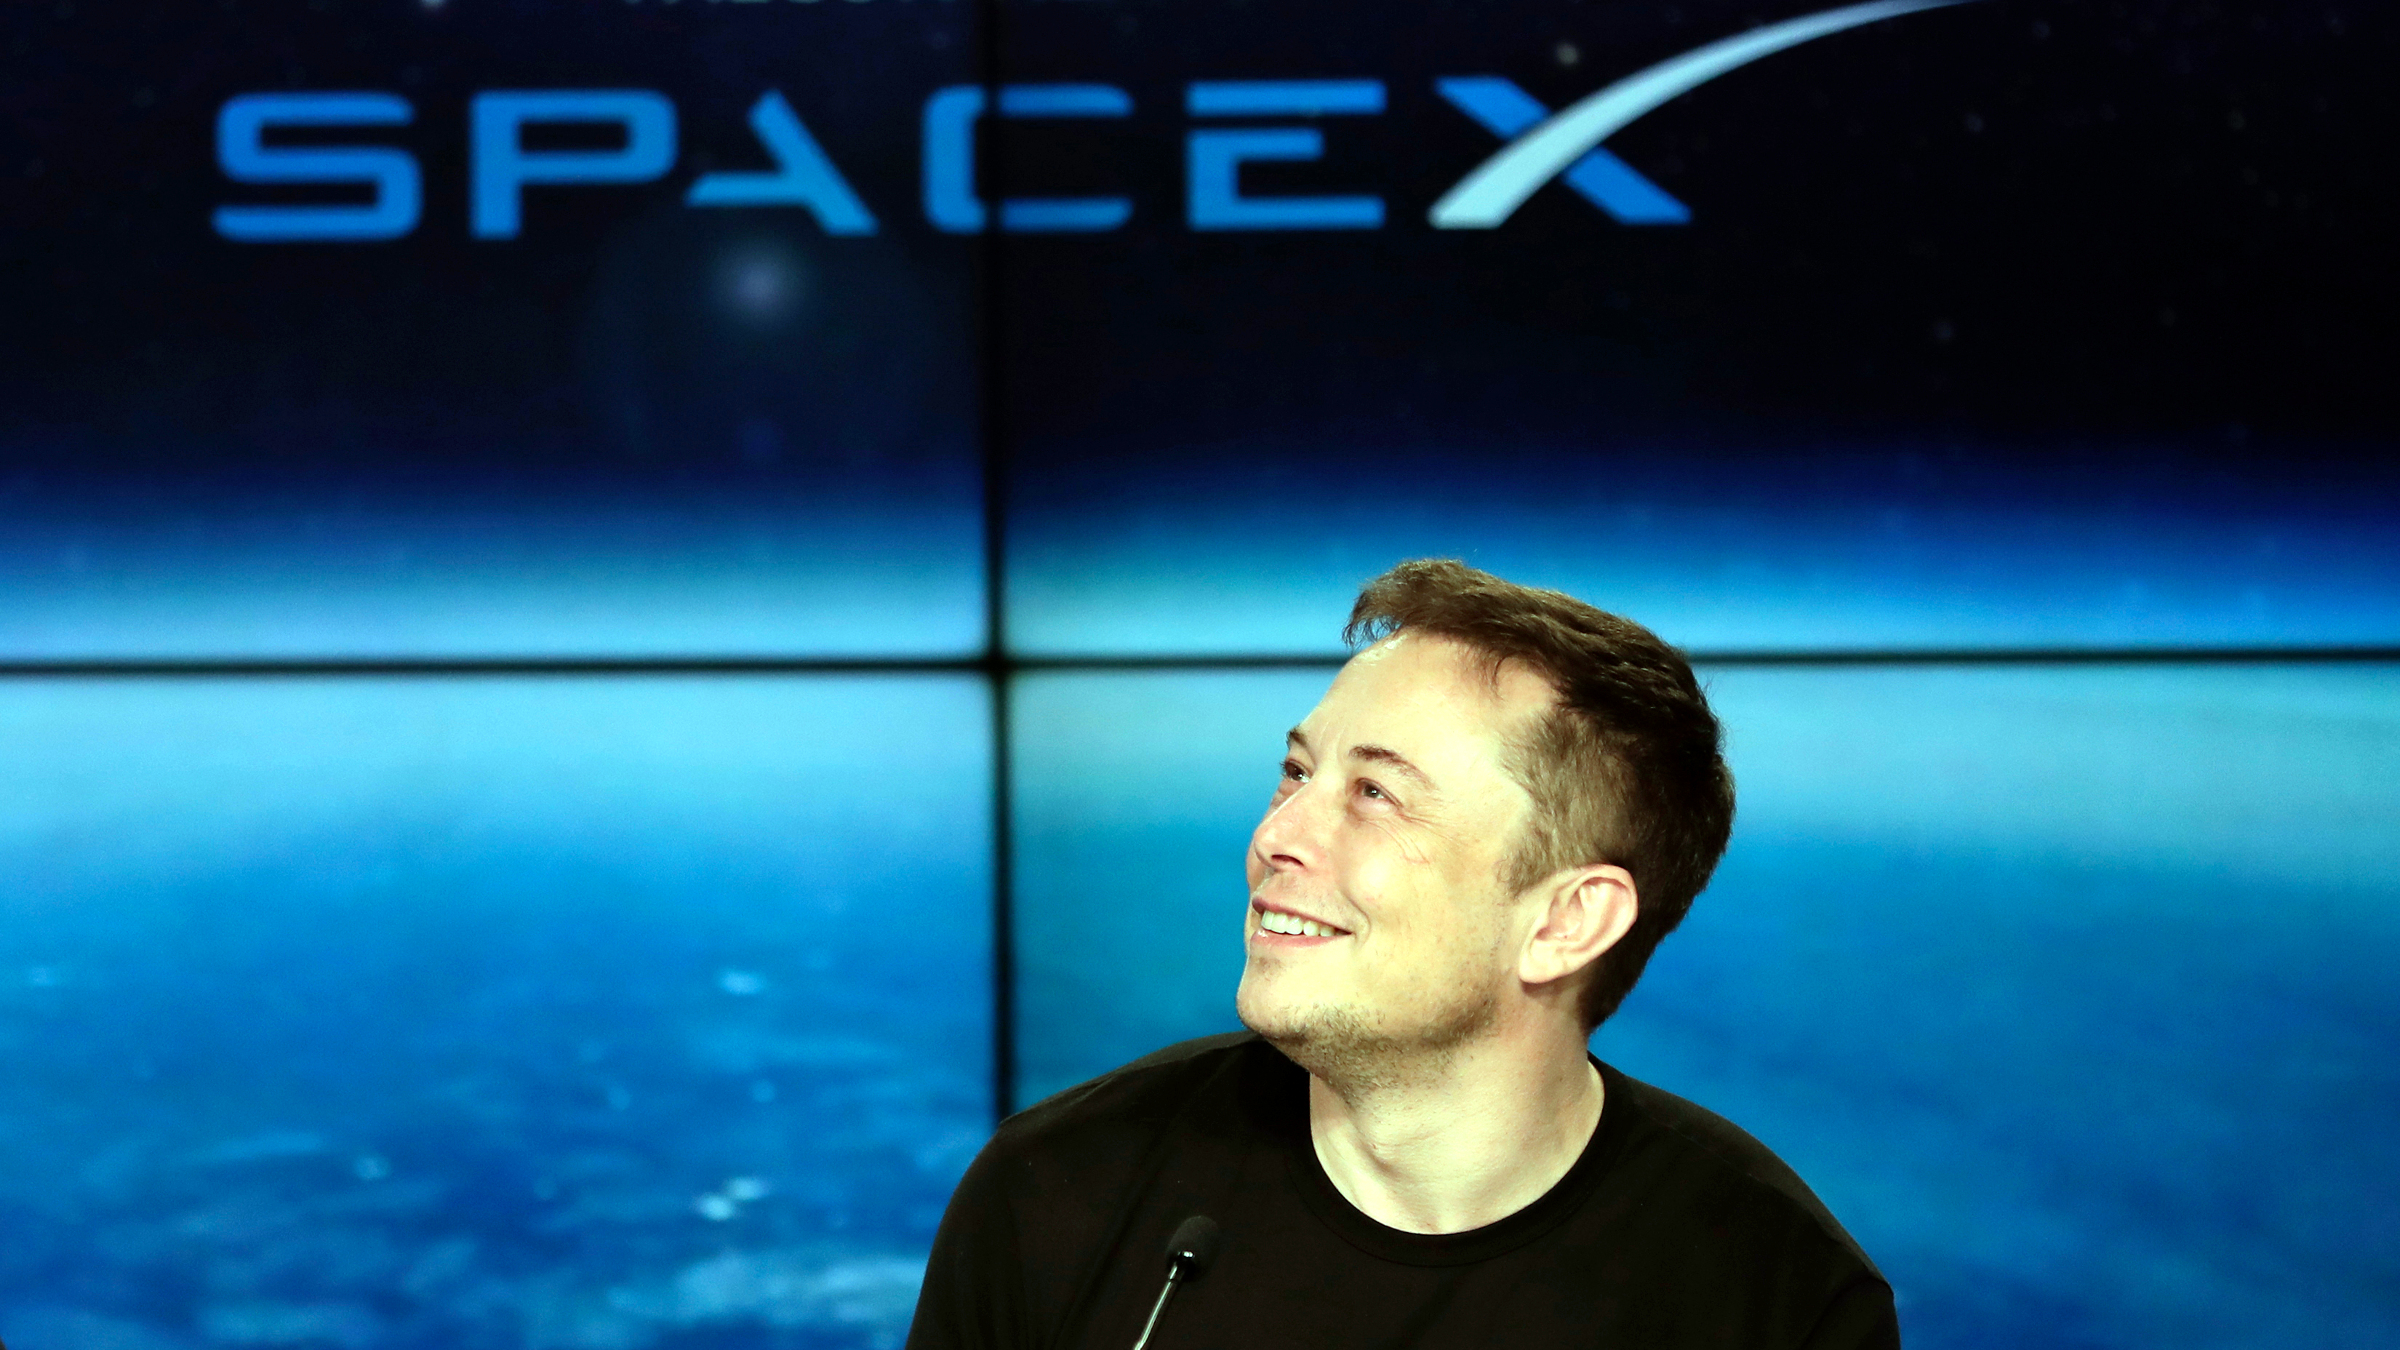 FILE - In this Feb. 6, 2018 file photo, Elon Musk, founder, CEO, and lead designer of SpaceX, speaks at a news conference after the Falcon 9 SpaceX heavy rocket launched successfully from the Kennedy Space Center in Cape Canaveral, Fla. A committee of the Los Angeles City Council on Wednesday, April 18, approved an environmental review exemption for a Los Angeles-area tunnel that Elon Musk wants to dig to test a novel underground transportation system.